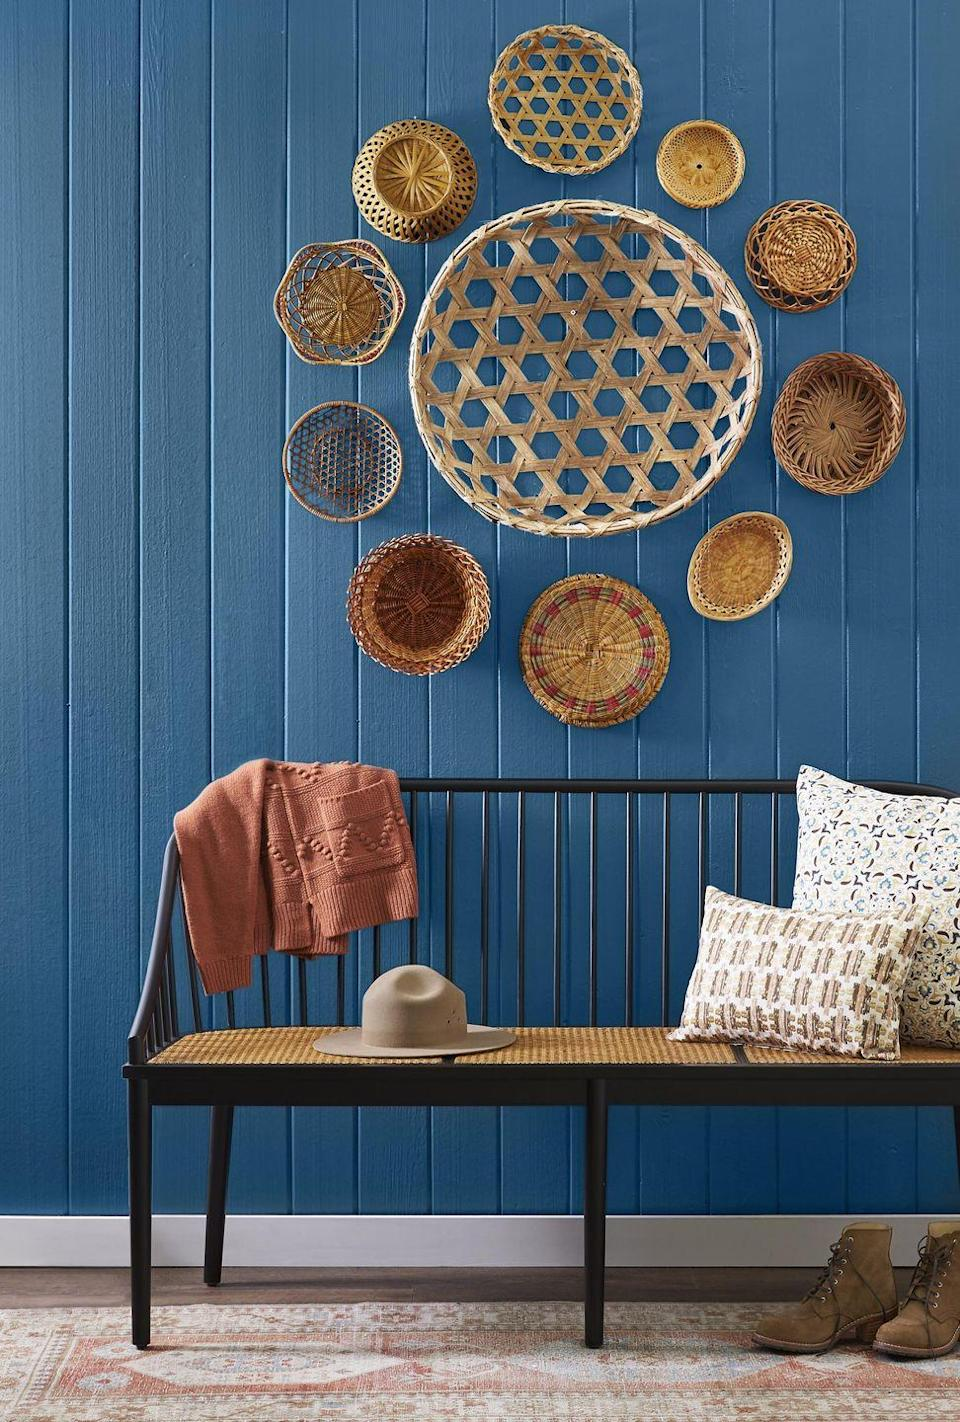 <p>An array of baskets in different sizes, shapes, and colors is all it takes to transform a ho-hum wall into the rooms focal point. <strong><br></strong></p><p><strong>To make: </strong>Using nails, hang a larger basket in the middle, then surround with smaller baskets in a circular or starburst pattern.<br></p>